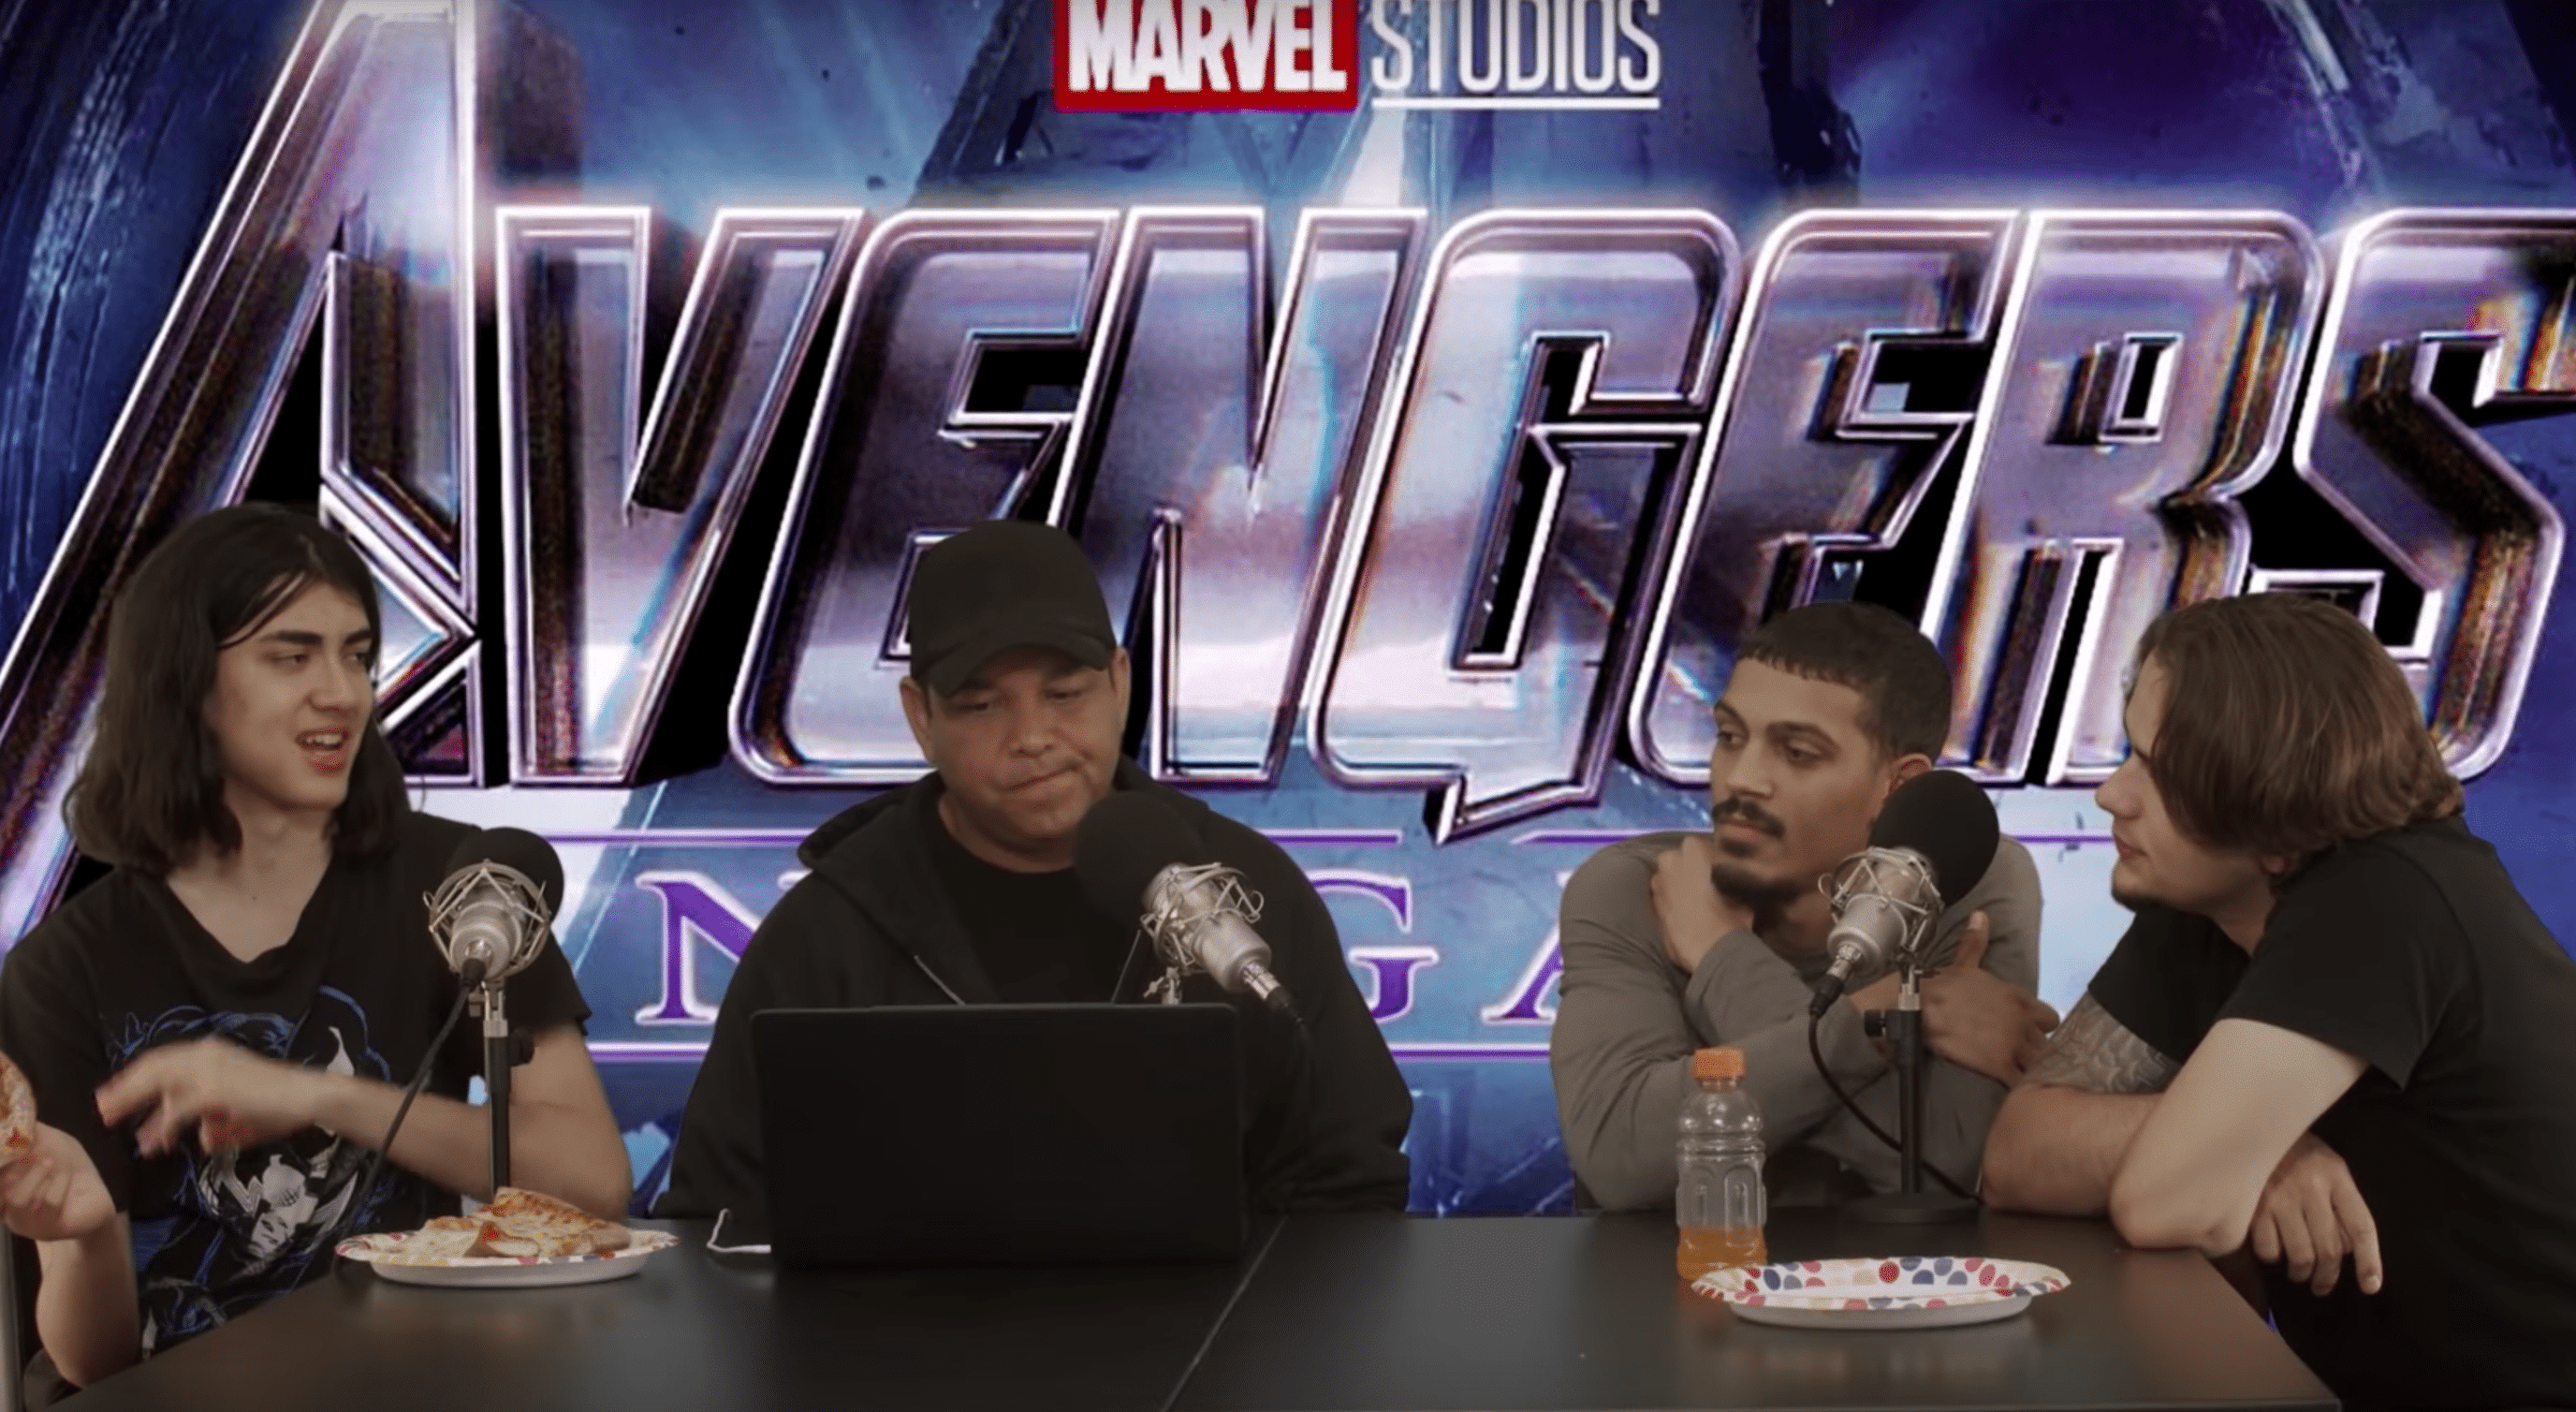 The Jackson brothers reviewing Avengers: End Game on their YouTube channel with James Sutherland. | Source: YouTube/LifeOn2